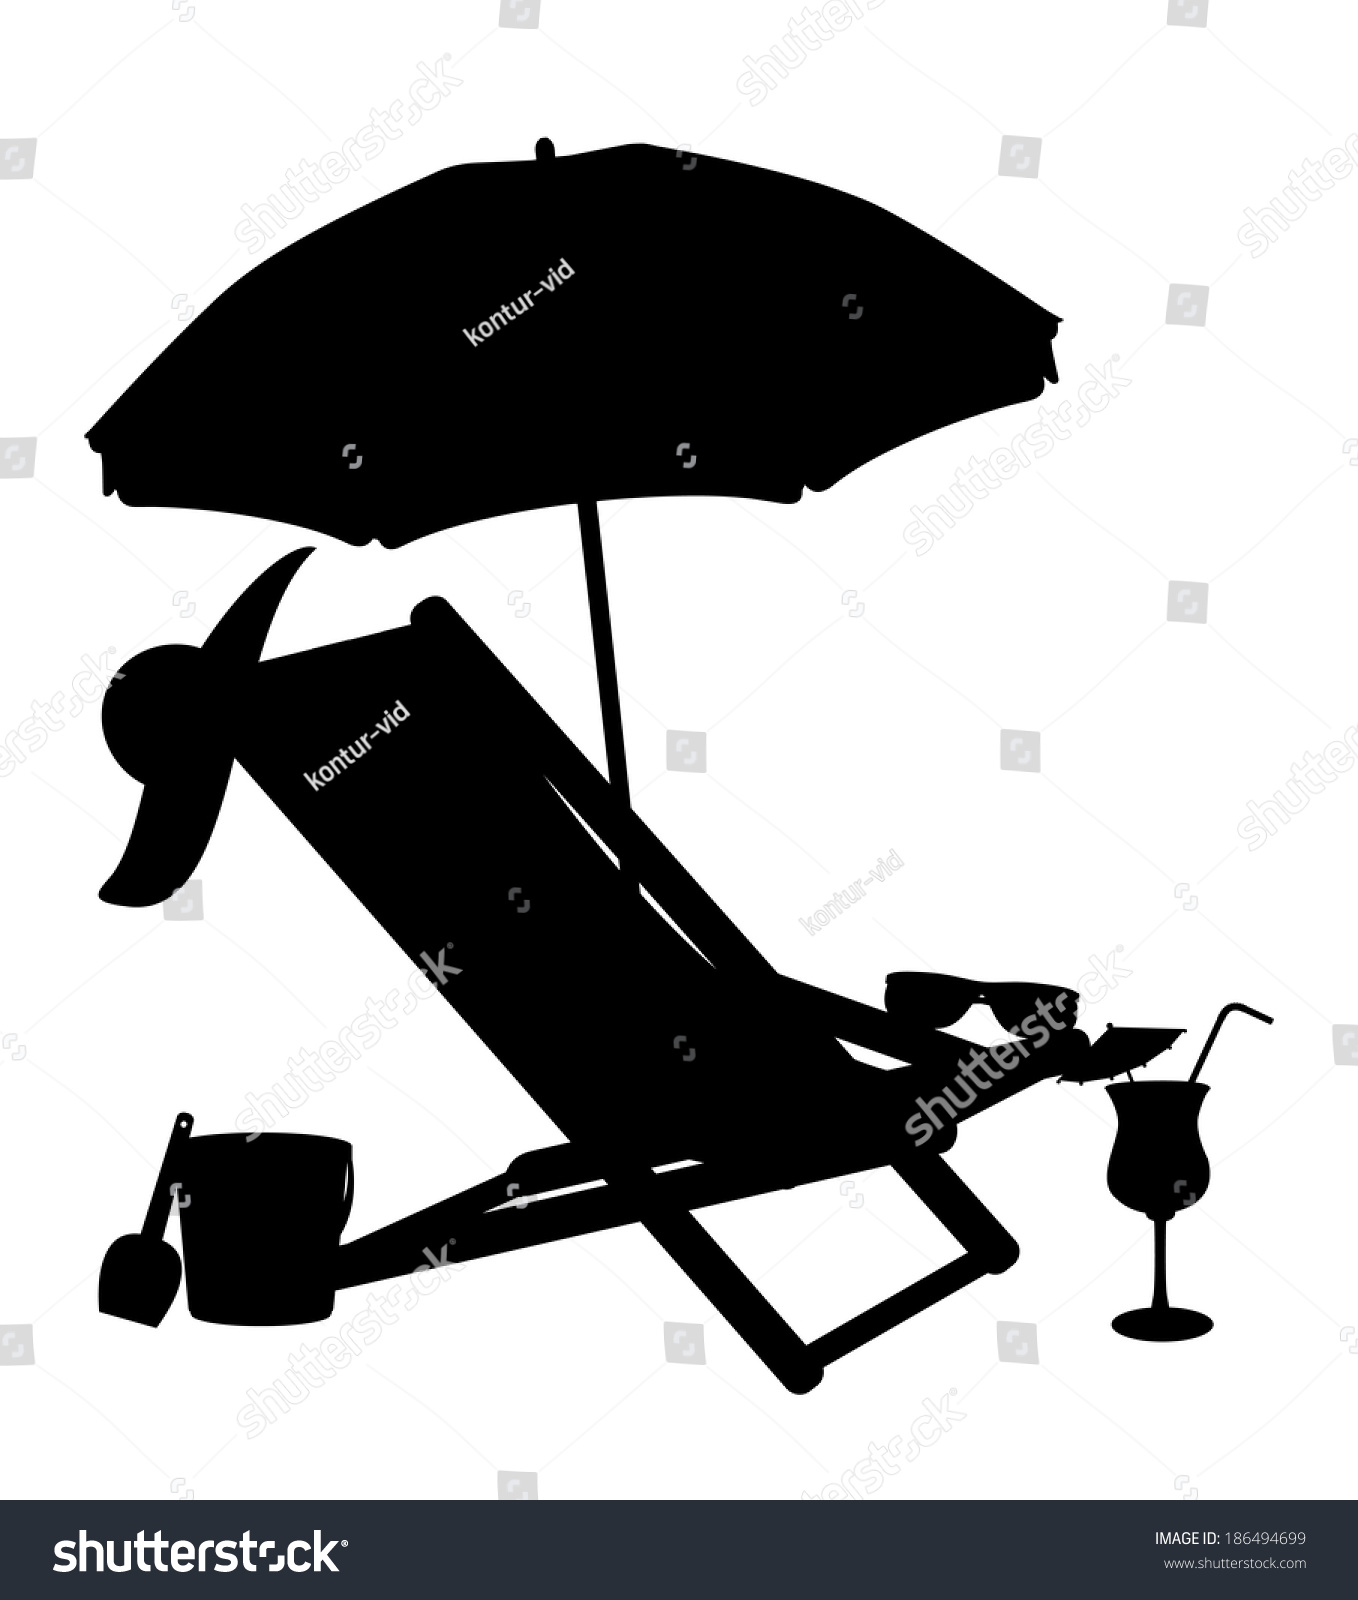 Gallery For > Beach Chair And Umbrella Silhouette